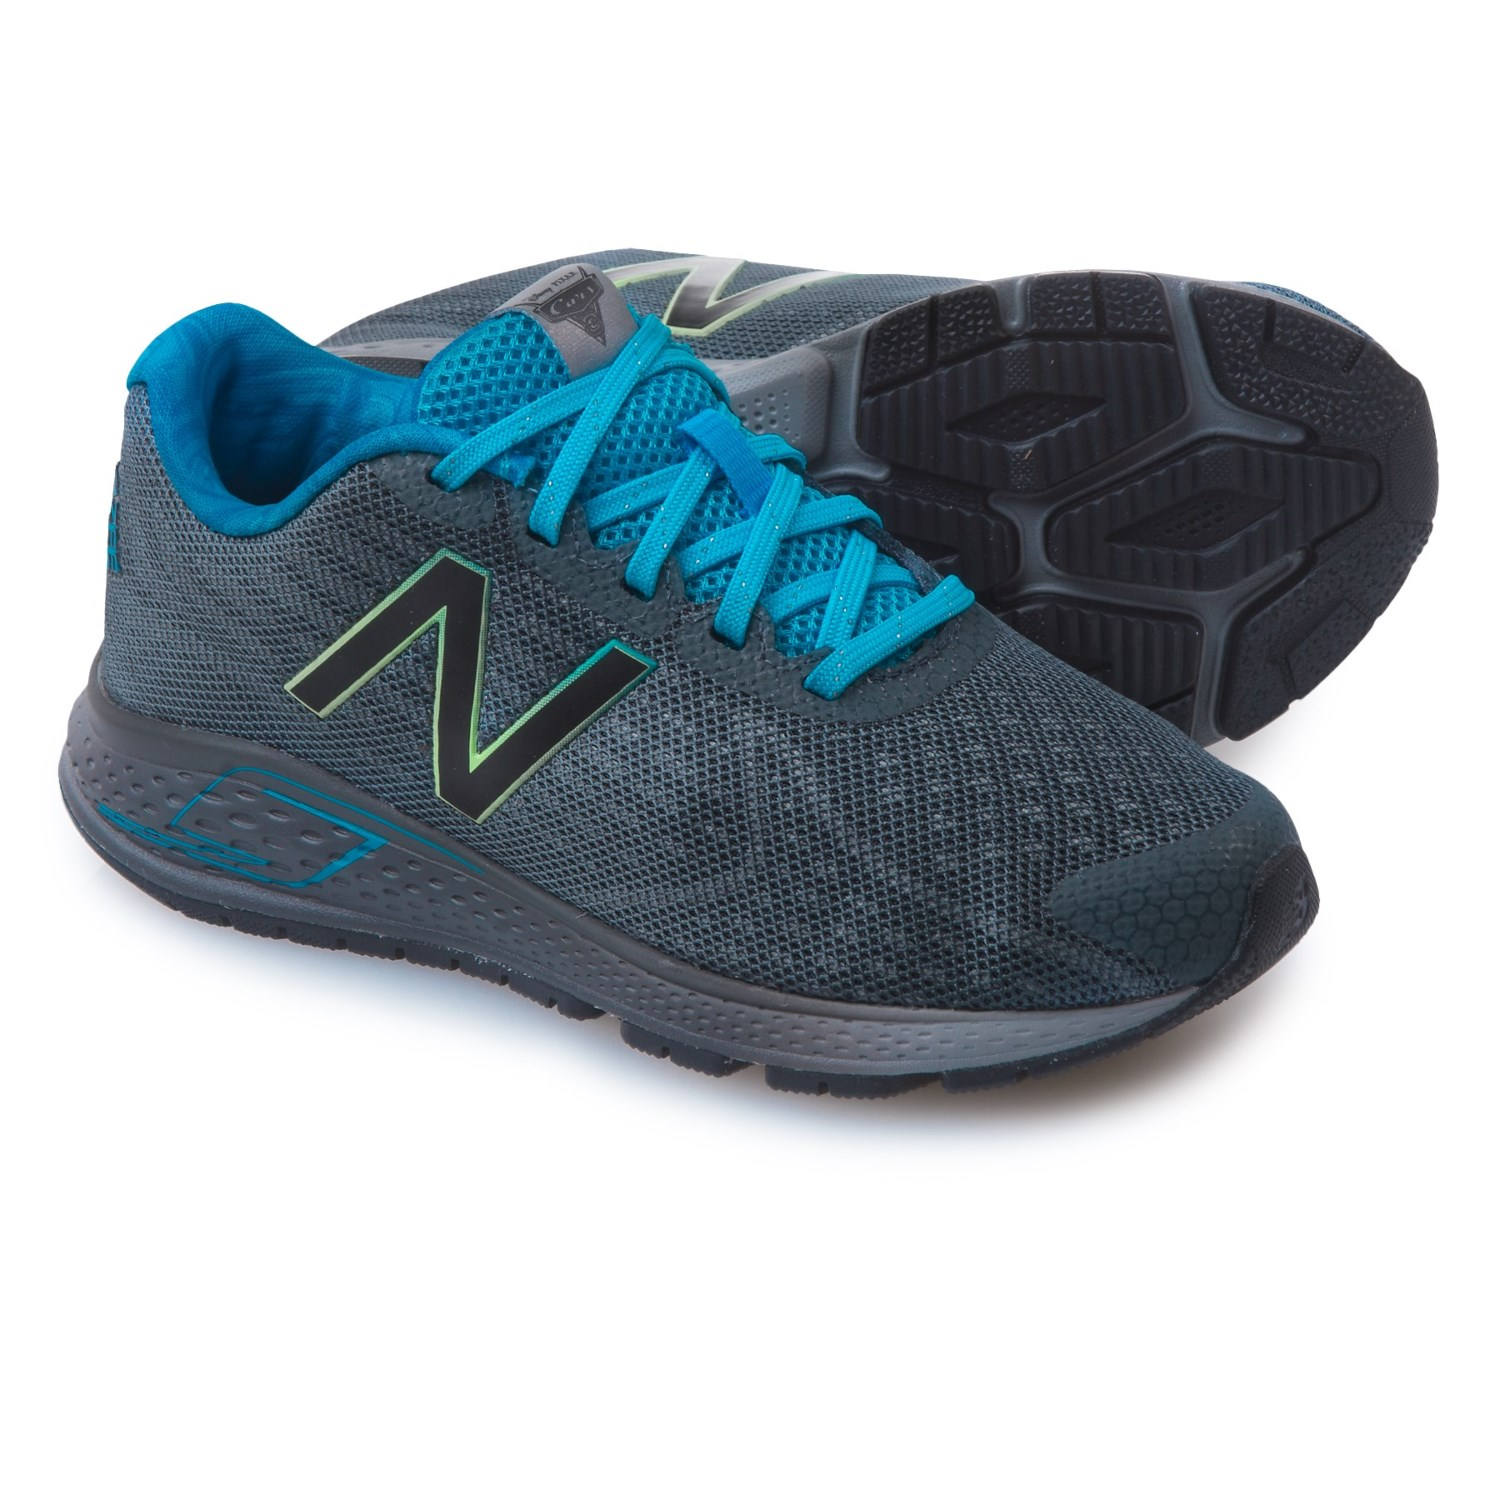 New balance vazee rush v2 mens running shoes black multi online - New Balance Vazee Rush V2 Running Shoes For Little And Big Kids In Grey